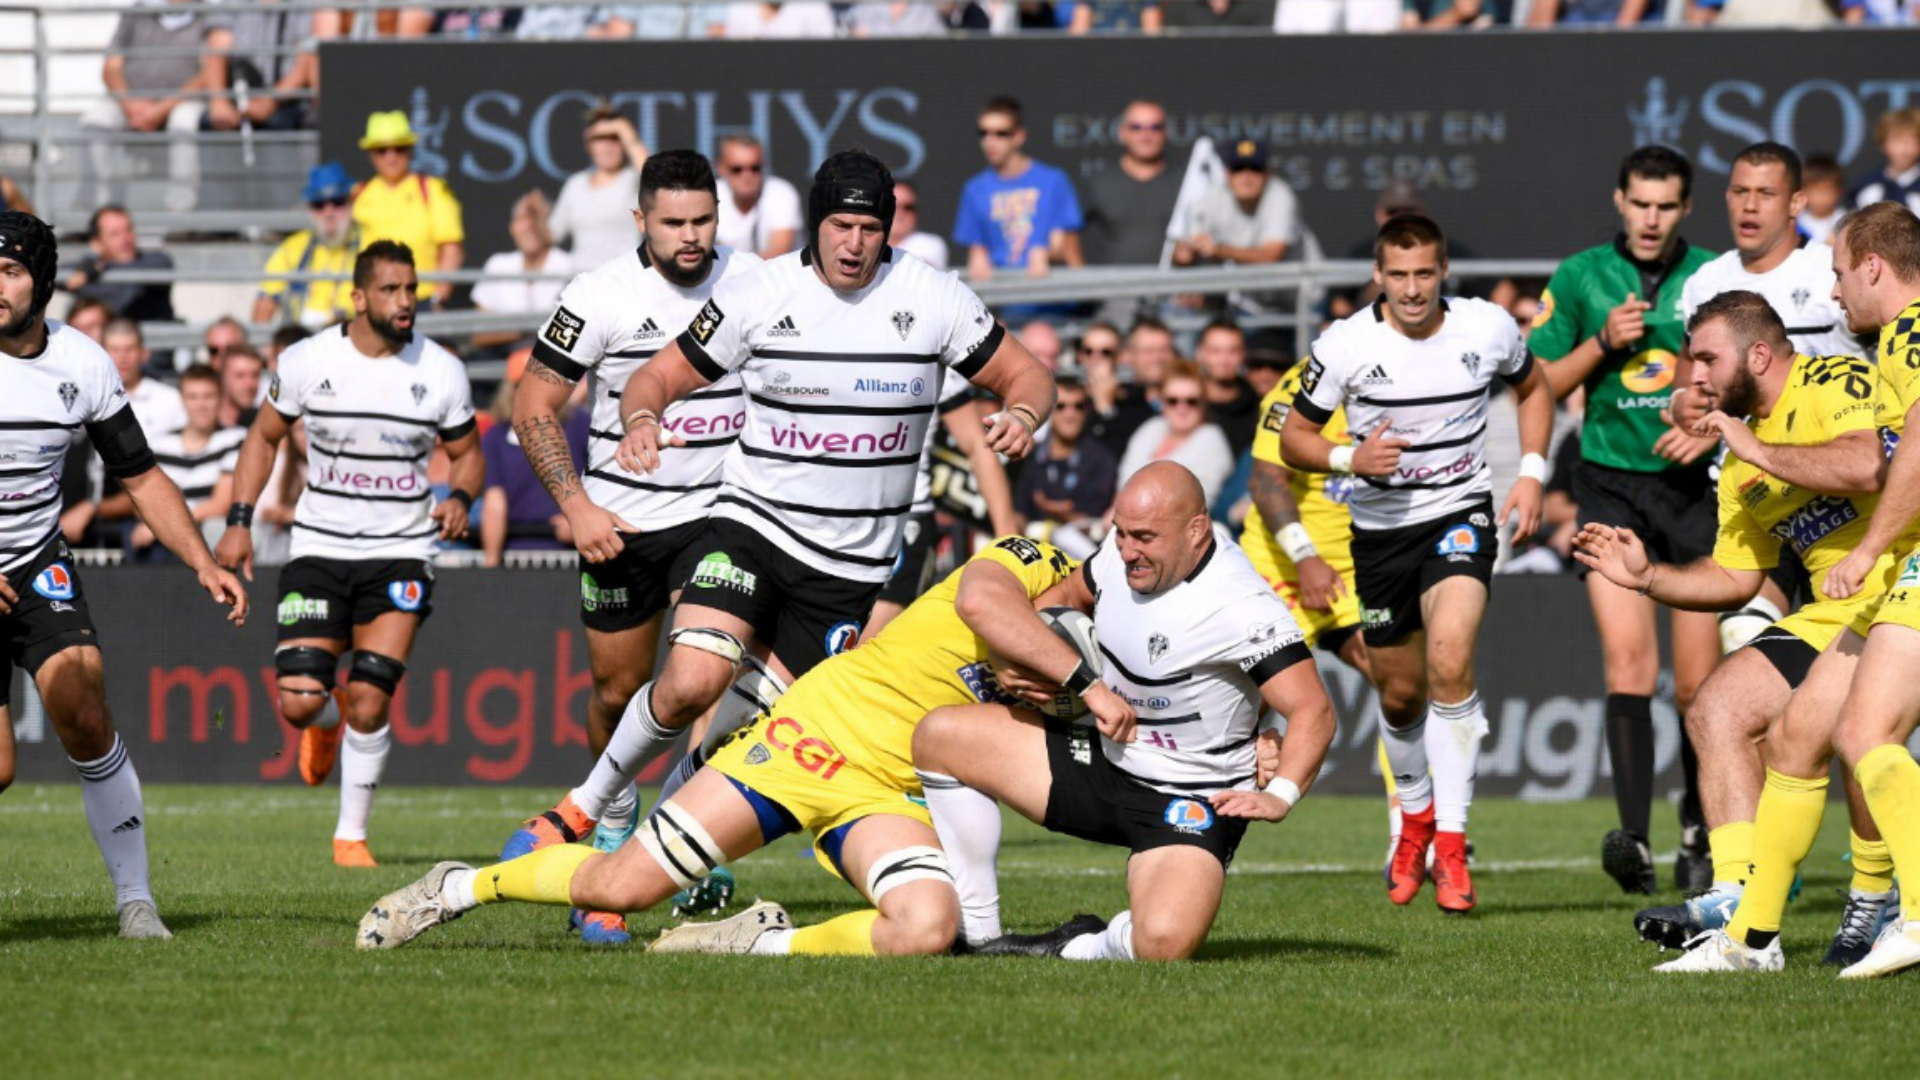 Clermont Auvergne suffered a derby defeat to Top 14 new boys Brive as defending champions Toulouse earned their first win of the season.